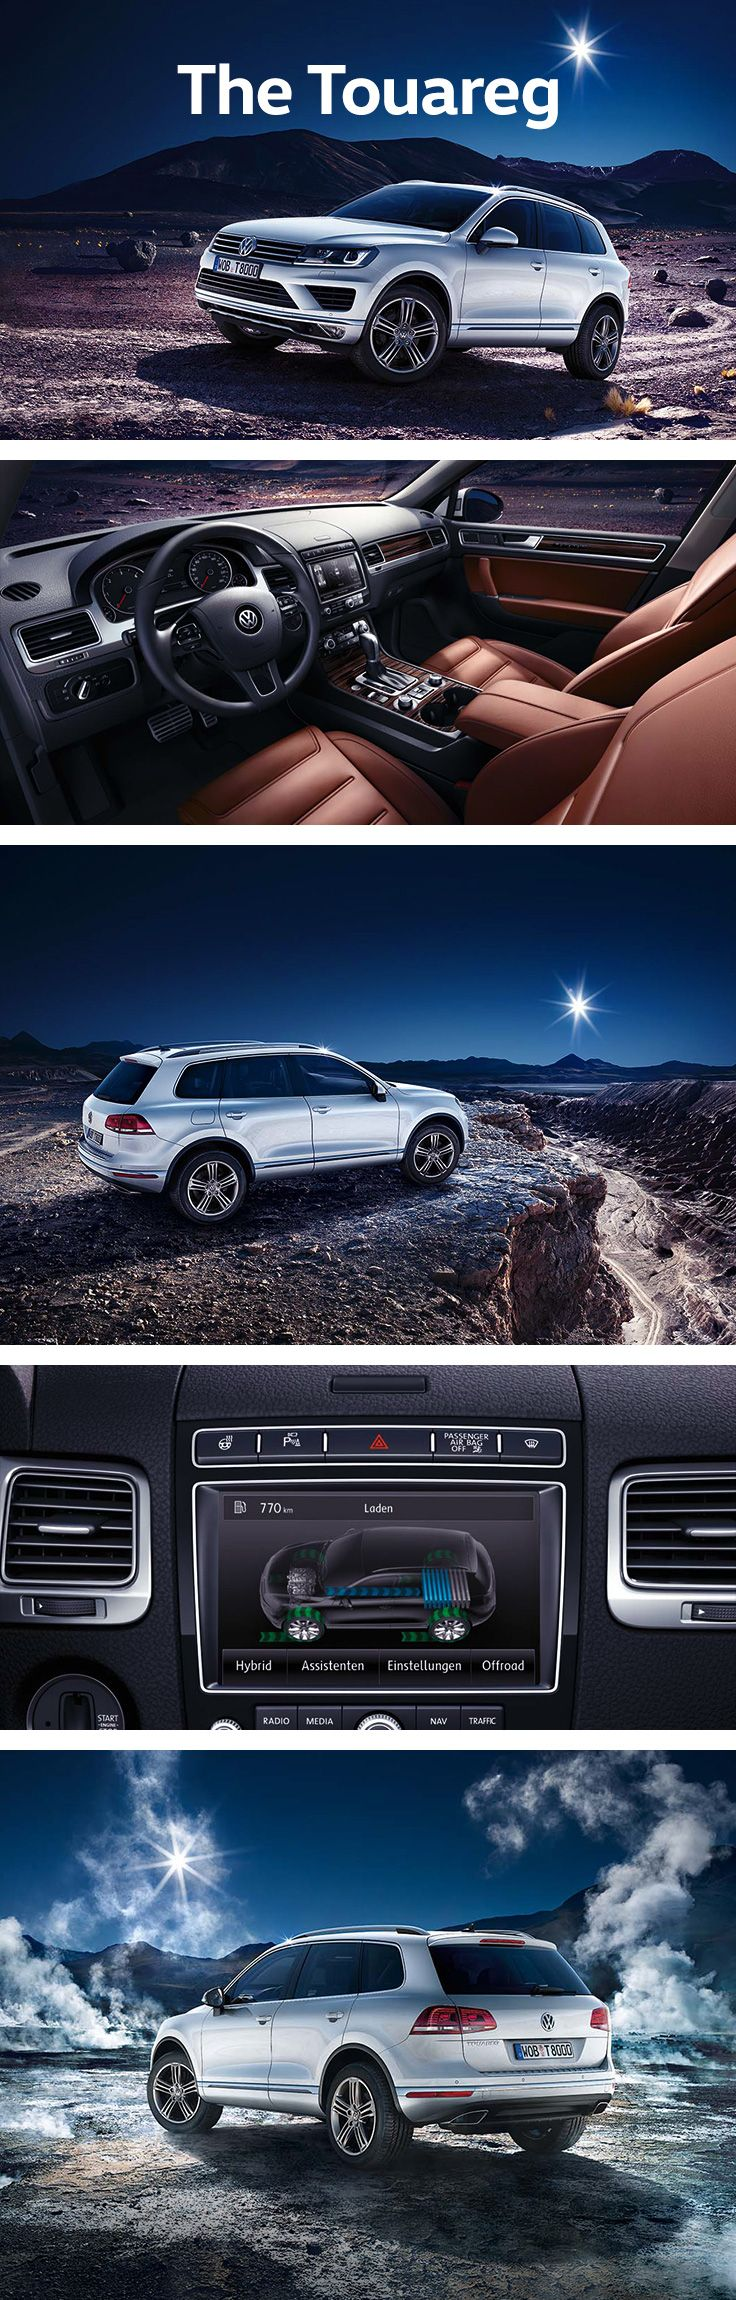 With a focus on comfort both in the city and offroad, the Volkswagen Touareg is a premium SUV that makes driving an elegant, easy experience. The optional Easy Open function enables the driver to open the boot with a simple motion of the foot – while the Keyless Access option means you can open the door or start the engine just by having the key on you. For active lifestyles and adventurous outings, the Touareg can drive through water that is up to 58 cm deep and can climb hills of up to…